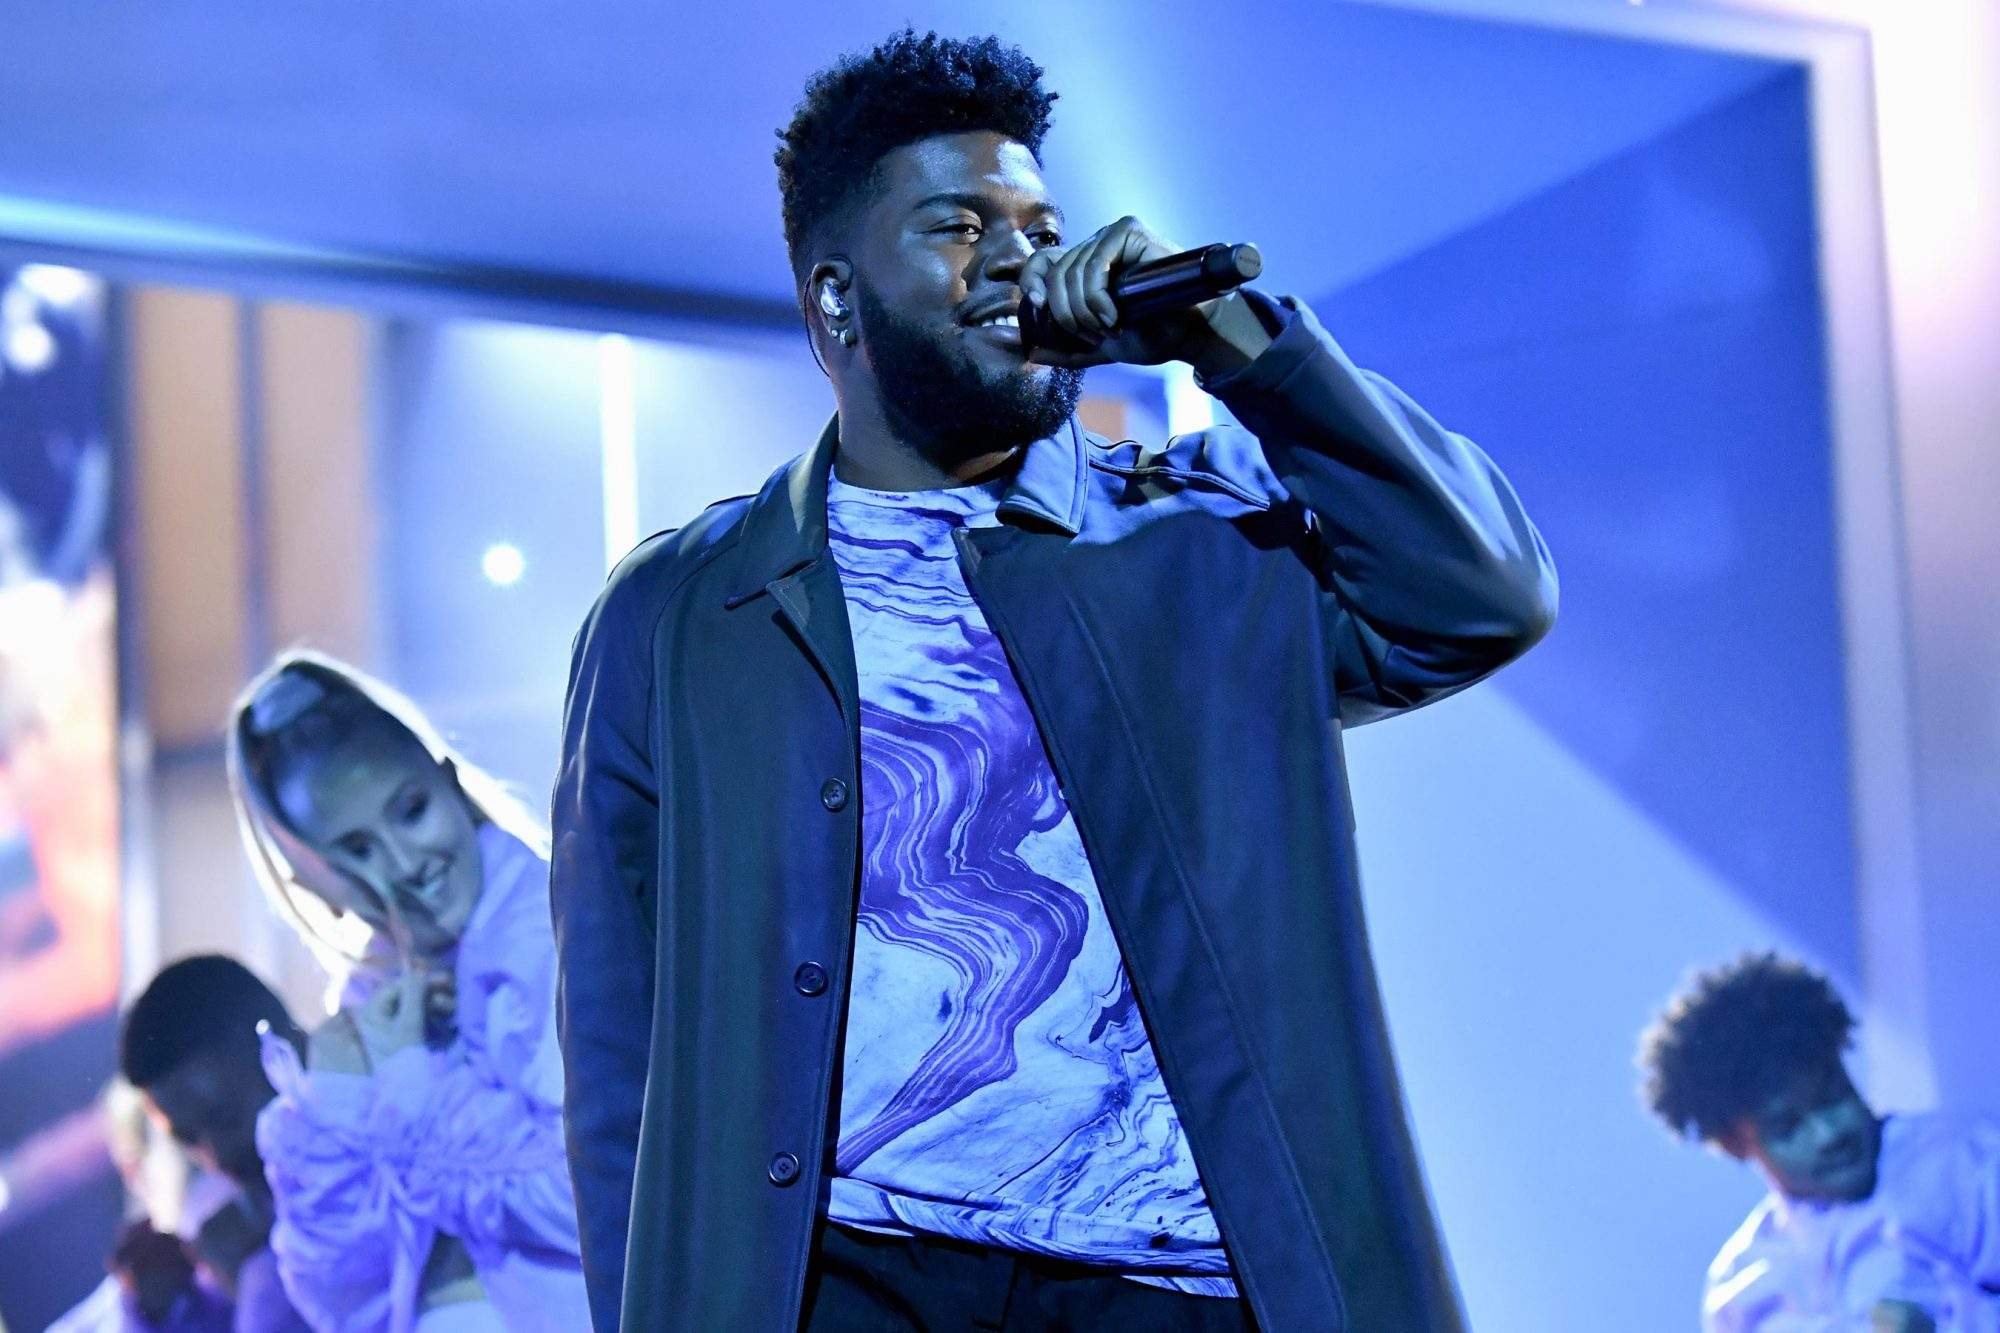 LAS VEGAS, NV - MAY 01: Khalid performs onstage during the 2019 Billboard Music Awards at MGM Grand Garden Arena on May 1, 2019 in Las Vegas, Nevada. (Photo by Jeff Kravitz/FilmMagic for dcp)